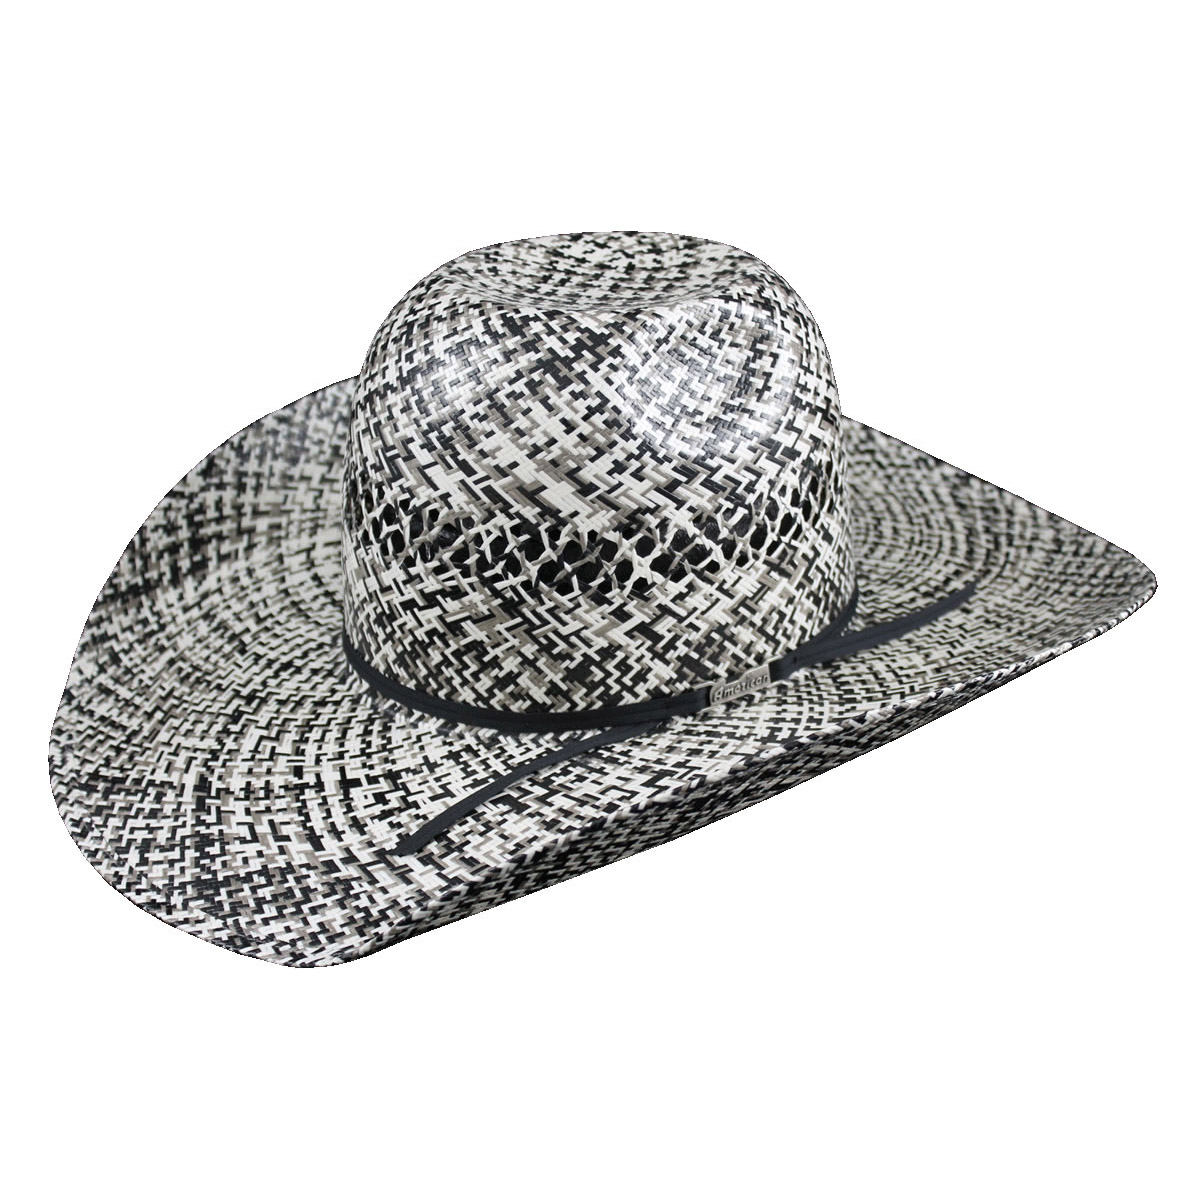 e6527203b8e American Hat Co 20☆ Two Tone Fancy Vent Straw Hat - Ivory Black . Tap to  expand